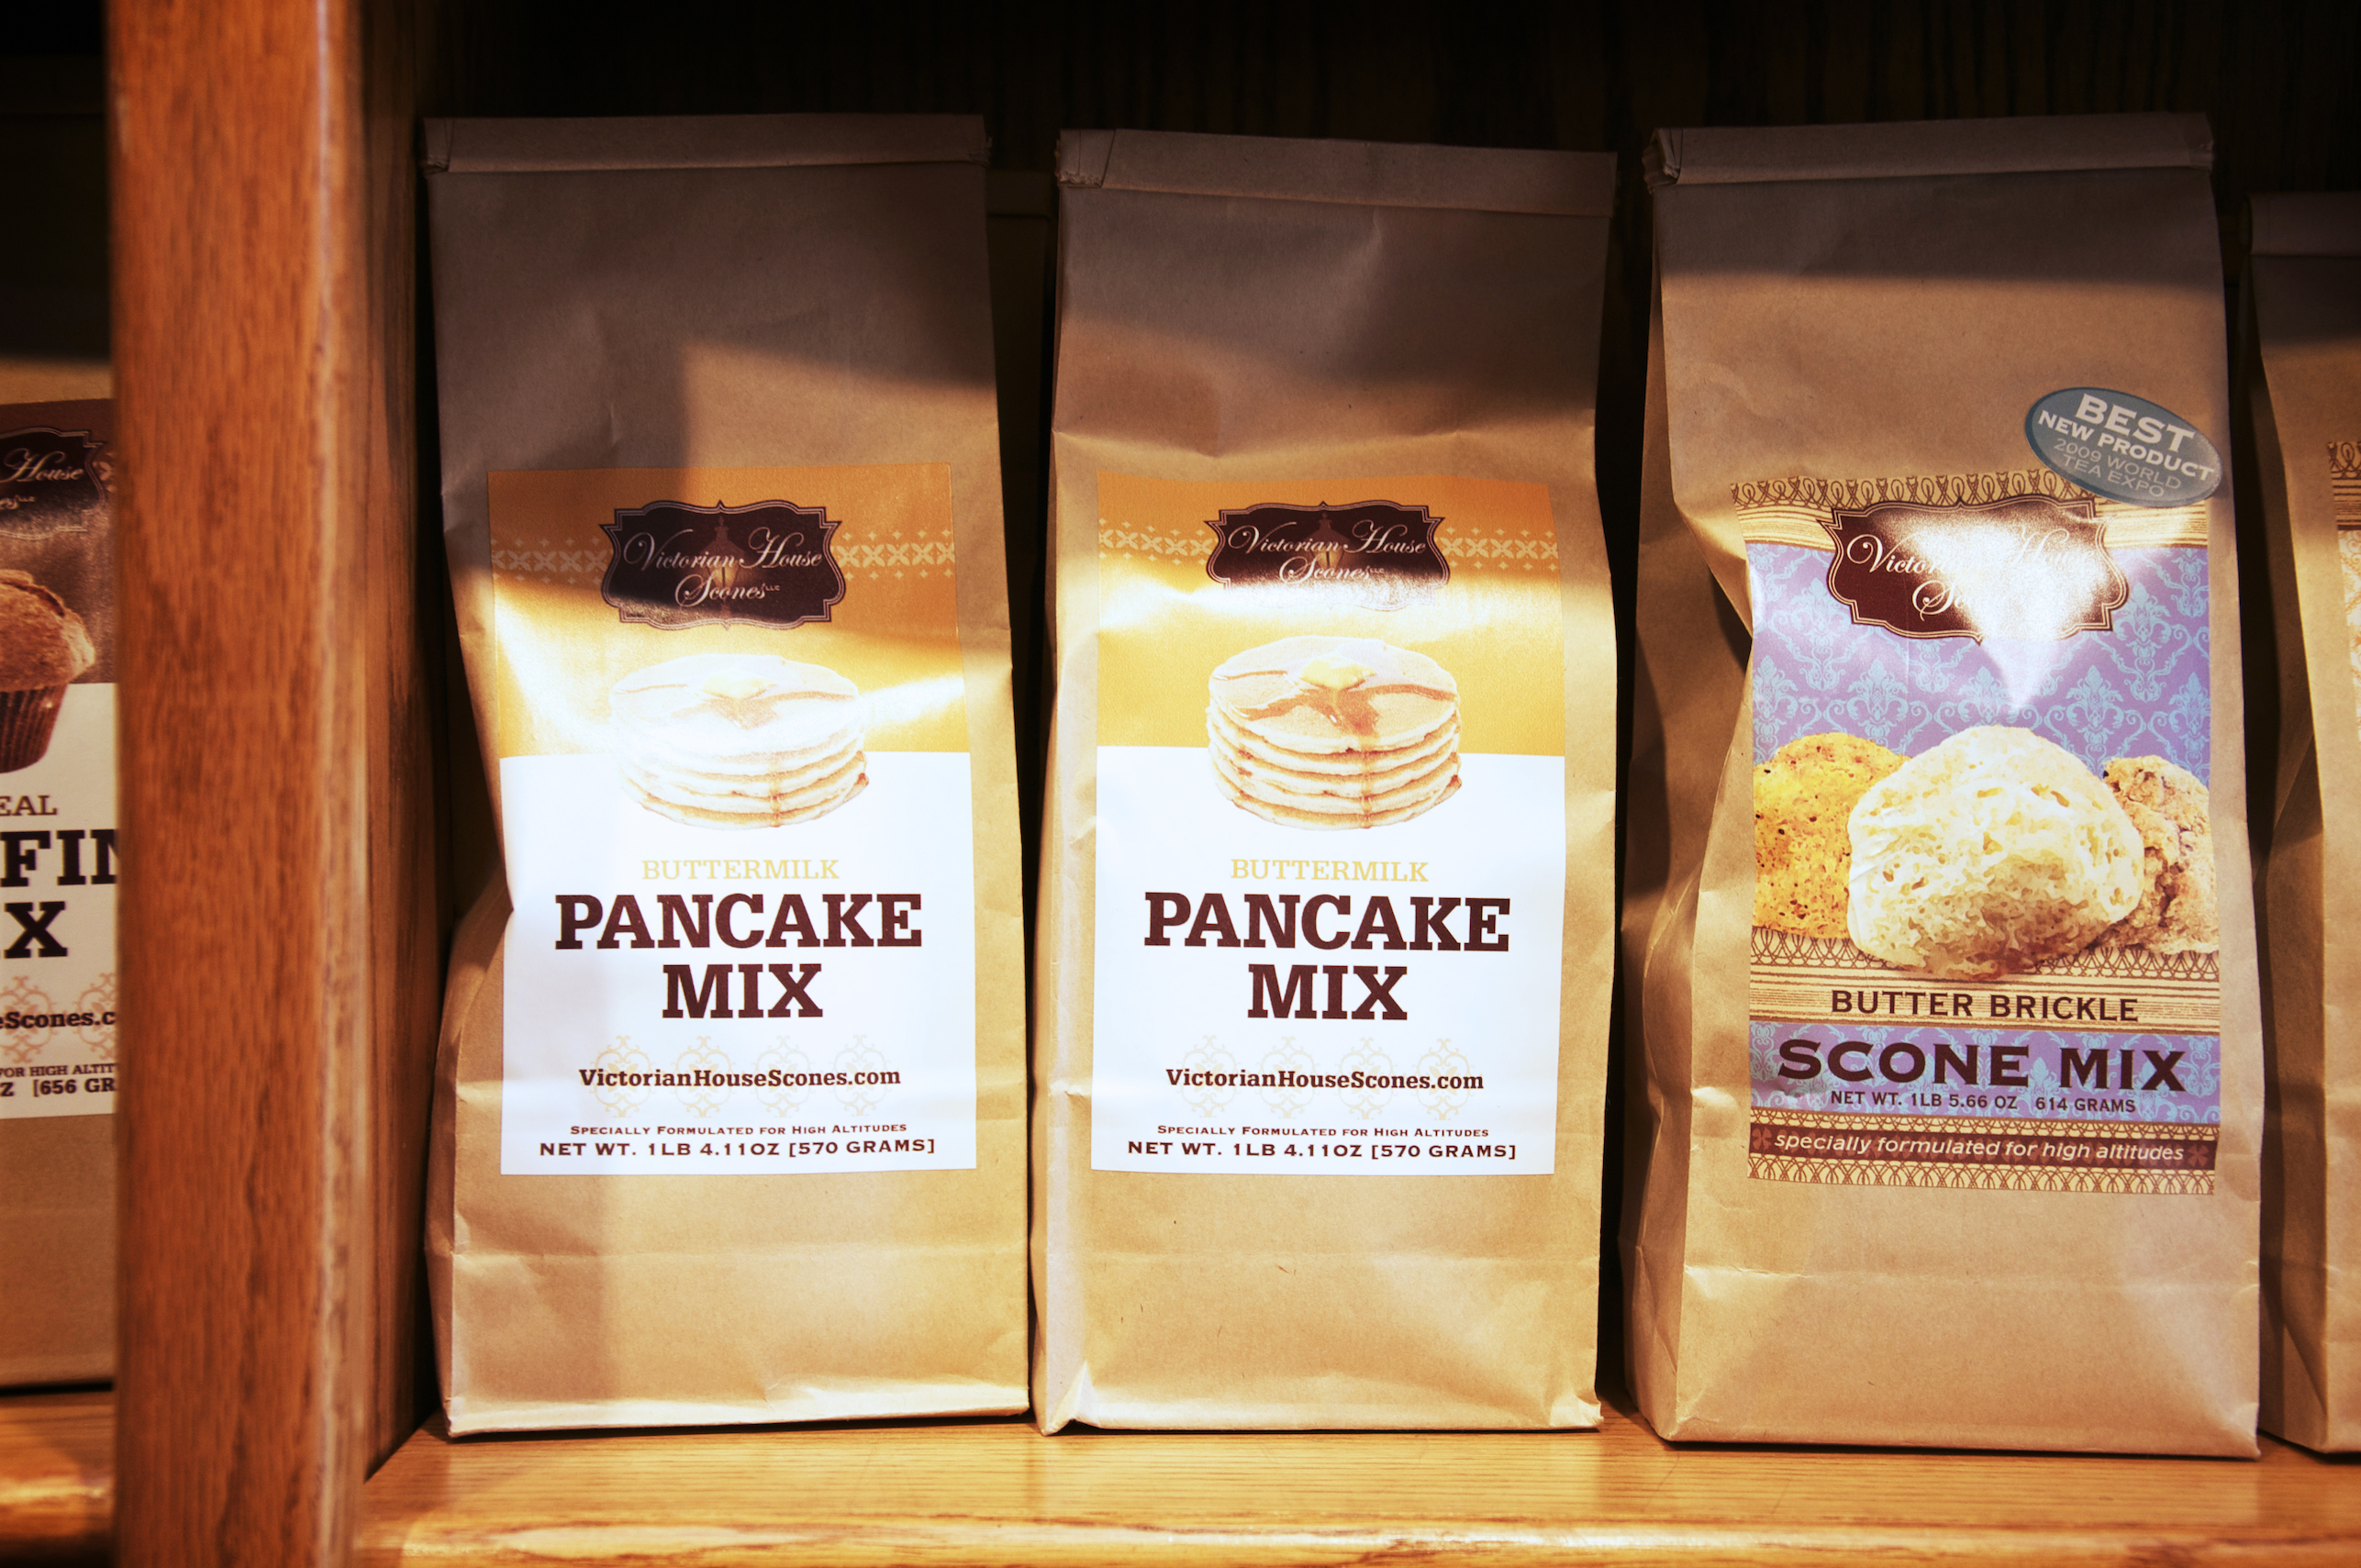 Pancake and Scone Mix